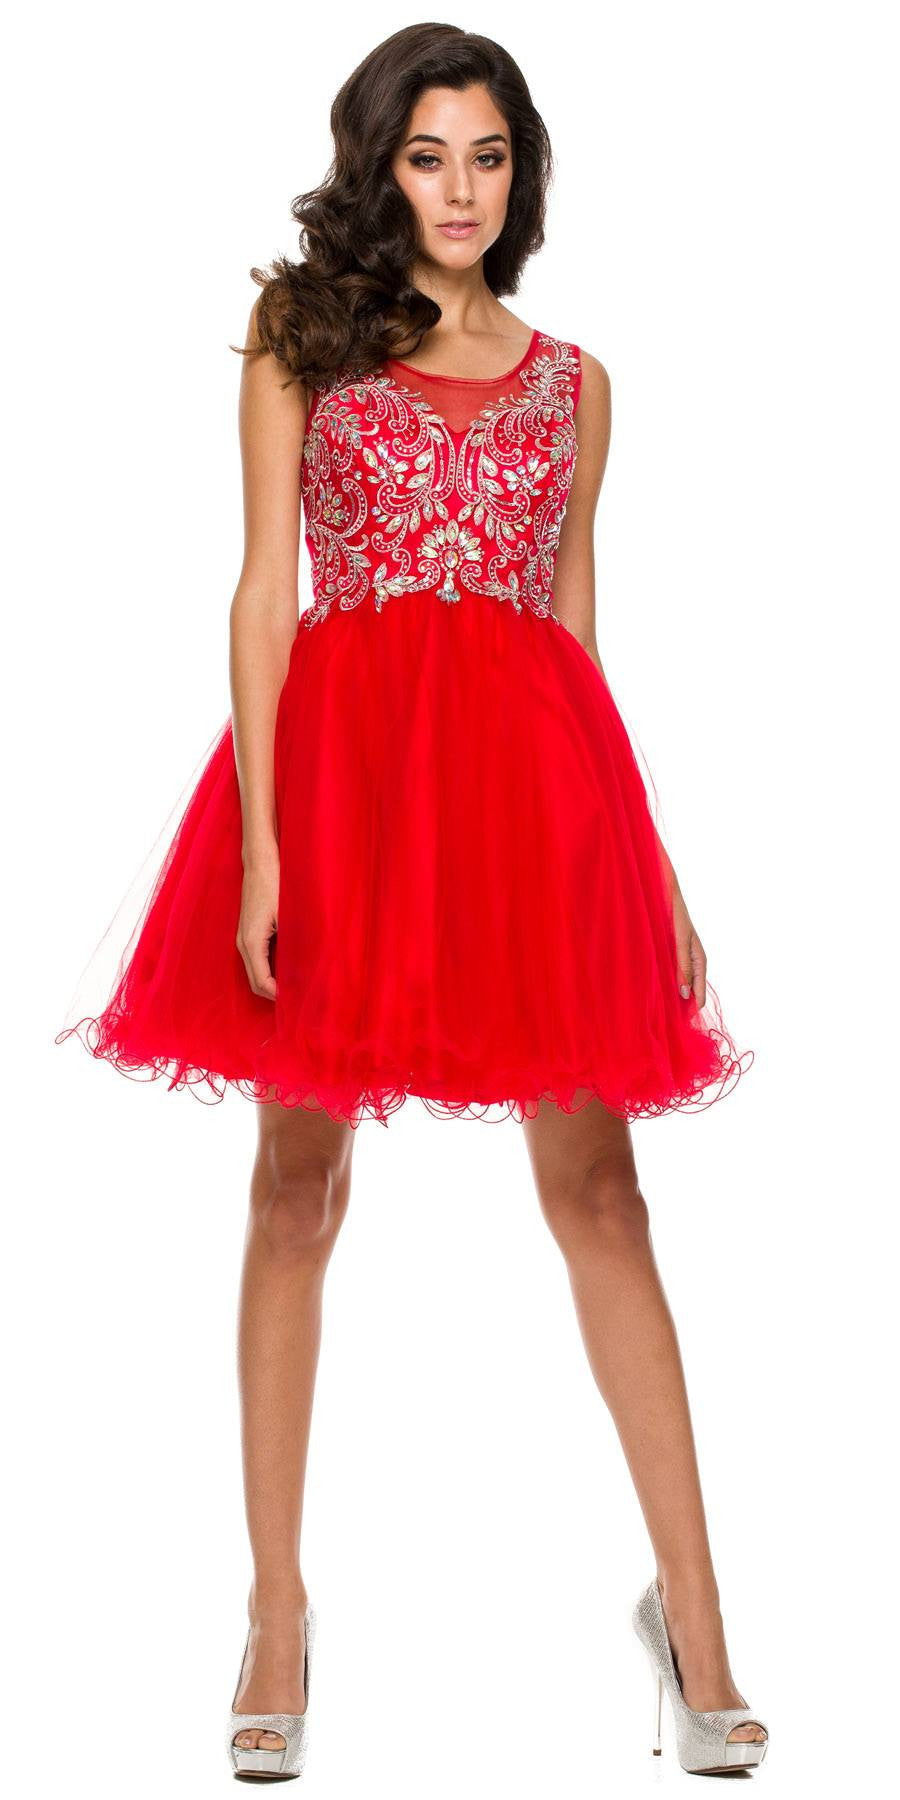 Gold and Red Short Homecoming Dresses